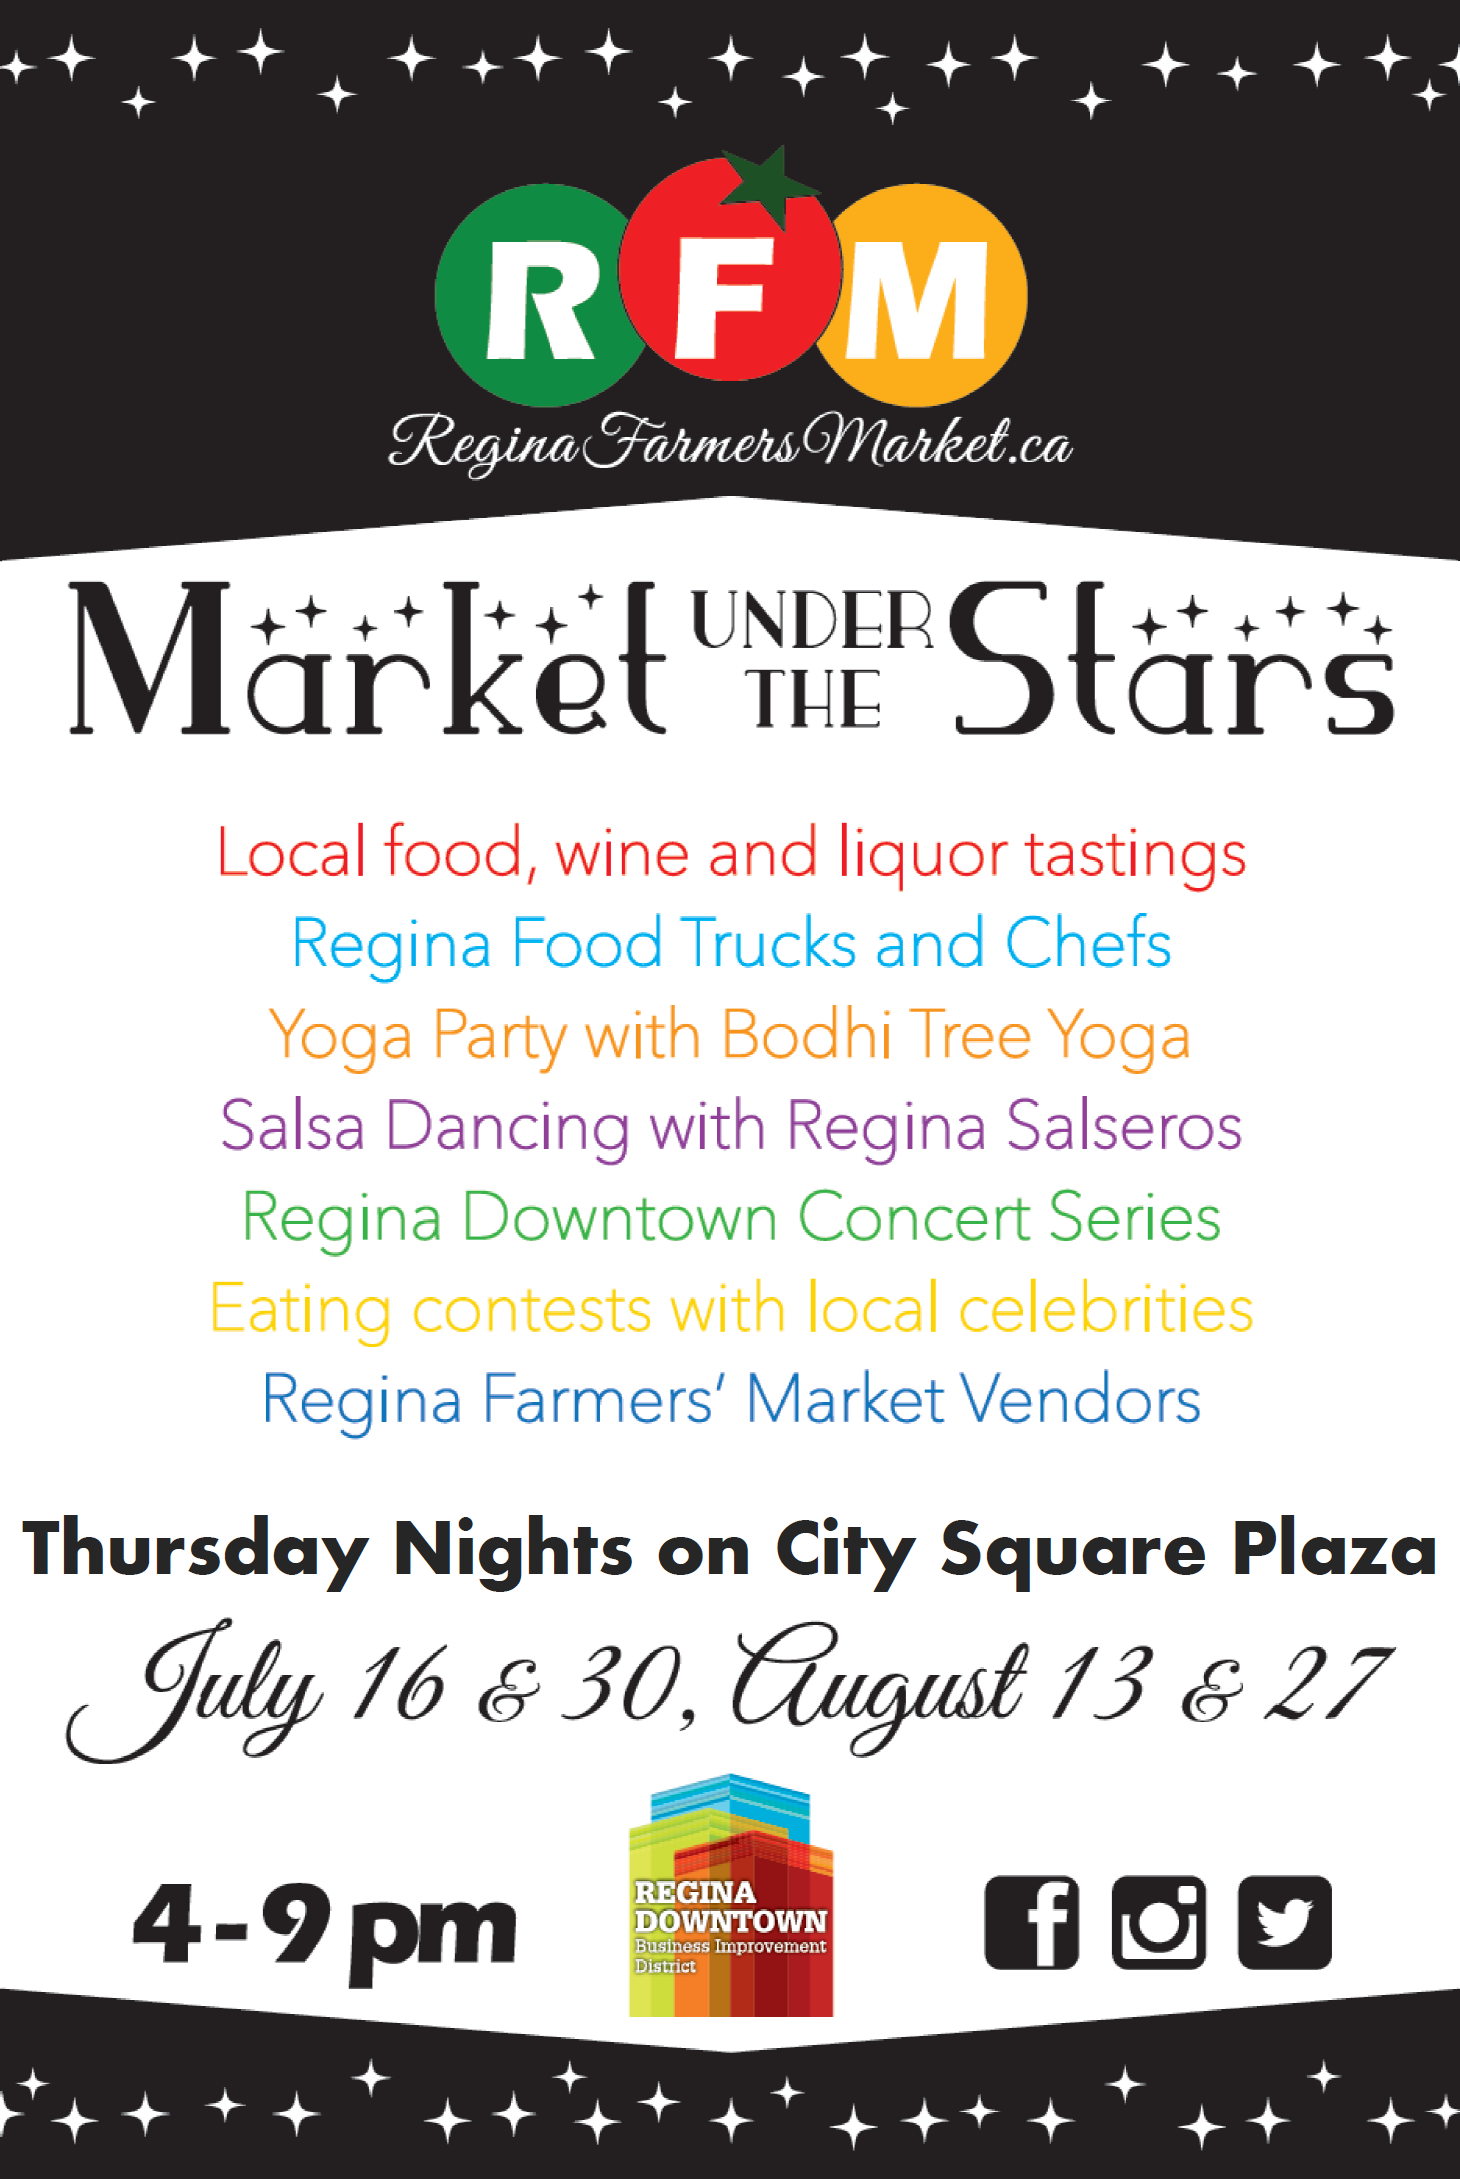 Market under the Stars July 30th, 2015 Contest! - Image 10